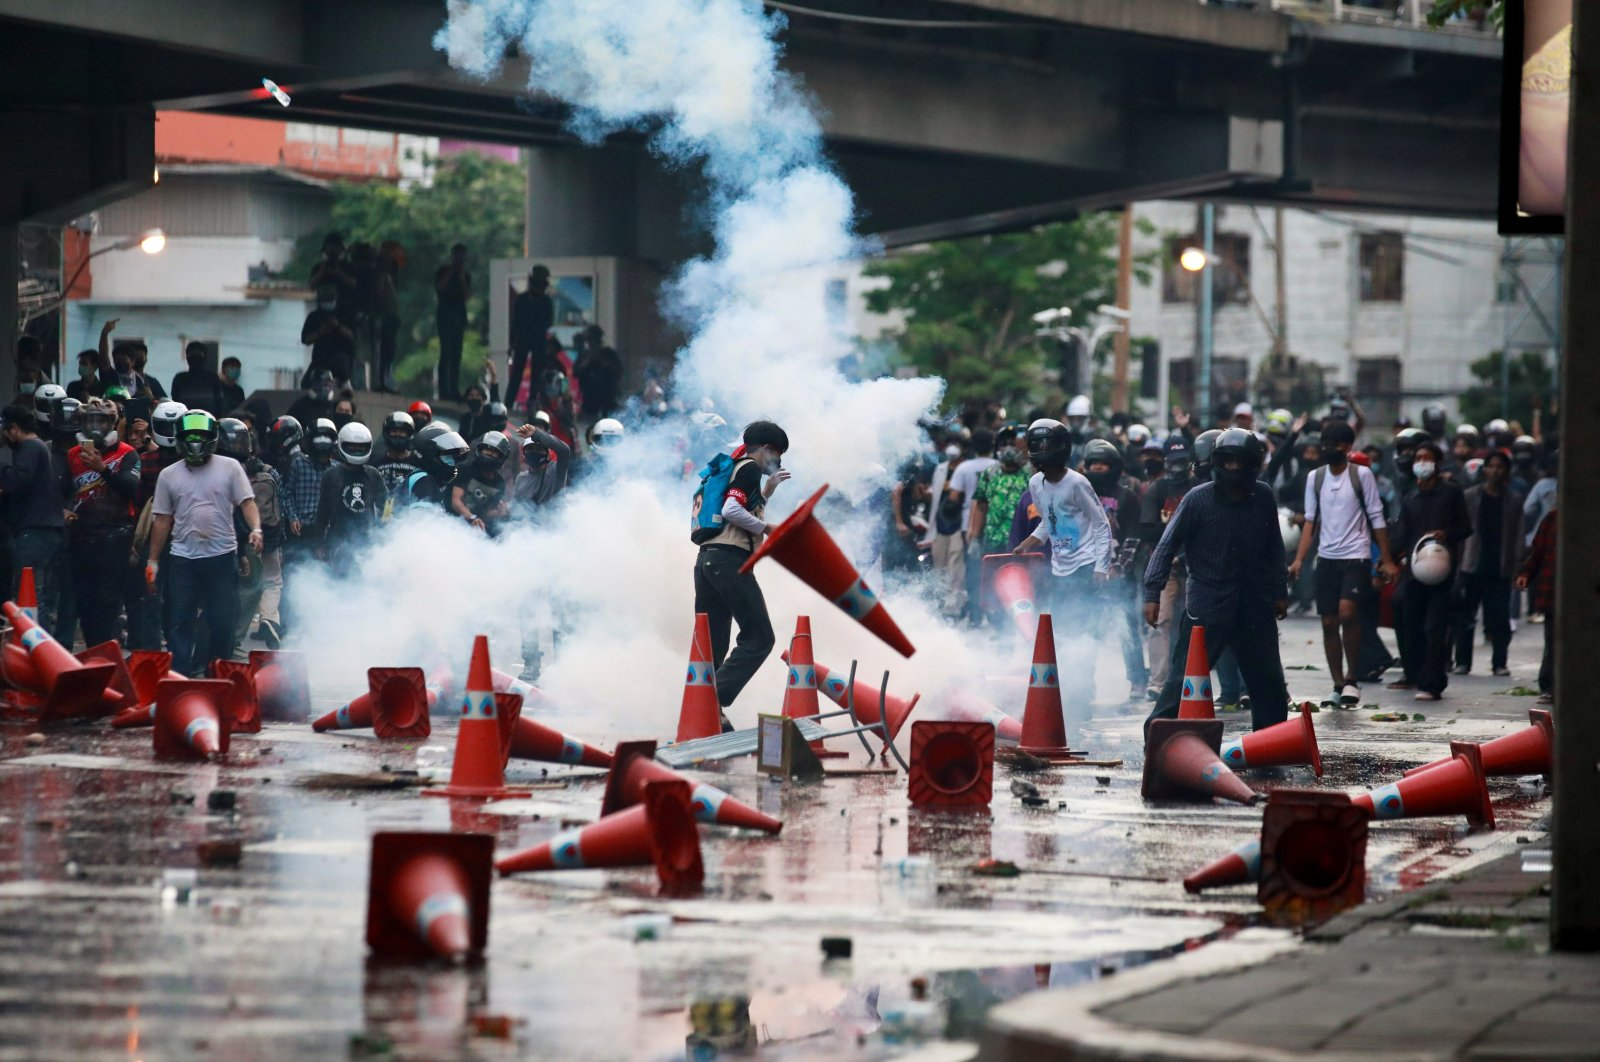 Demonstrators clash with police during a protest against the government's handling of the COVID-19 pandemic, in Bangkok, Thailand, Aug. 10, 2021. (REUTERS Photo)